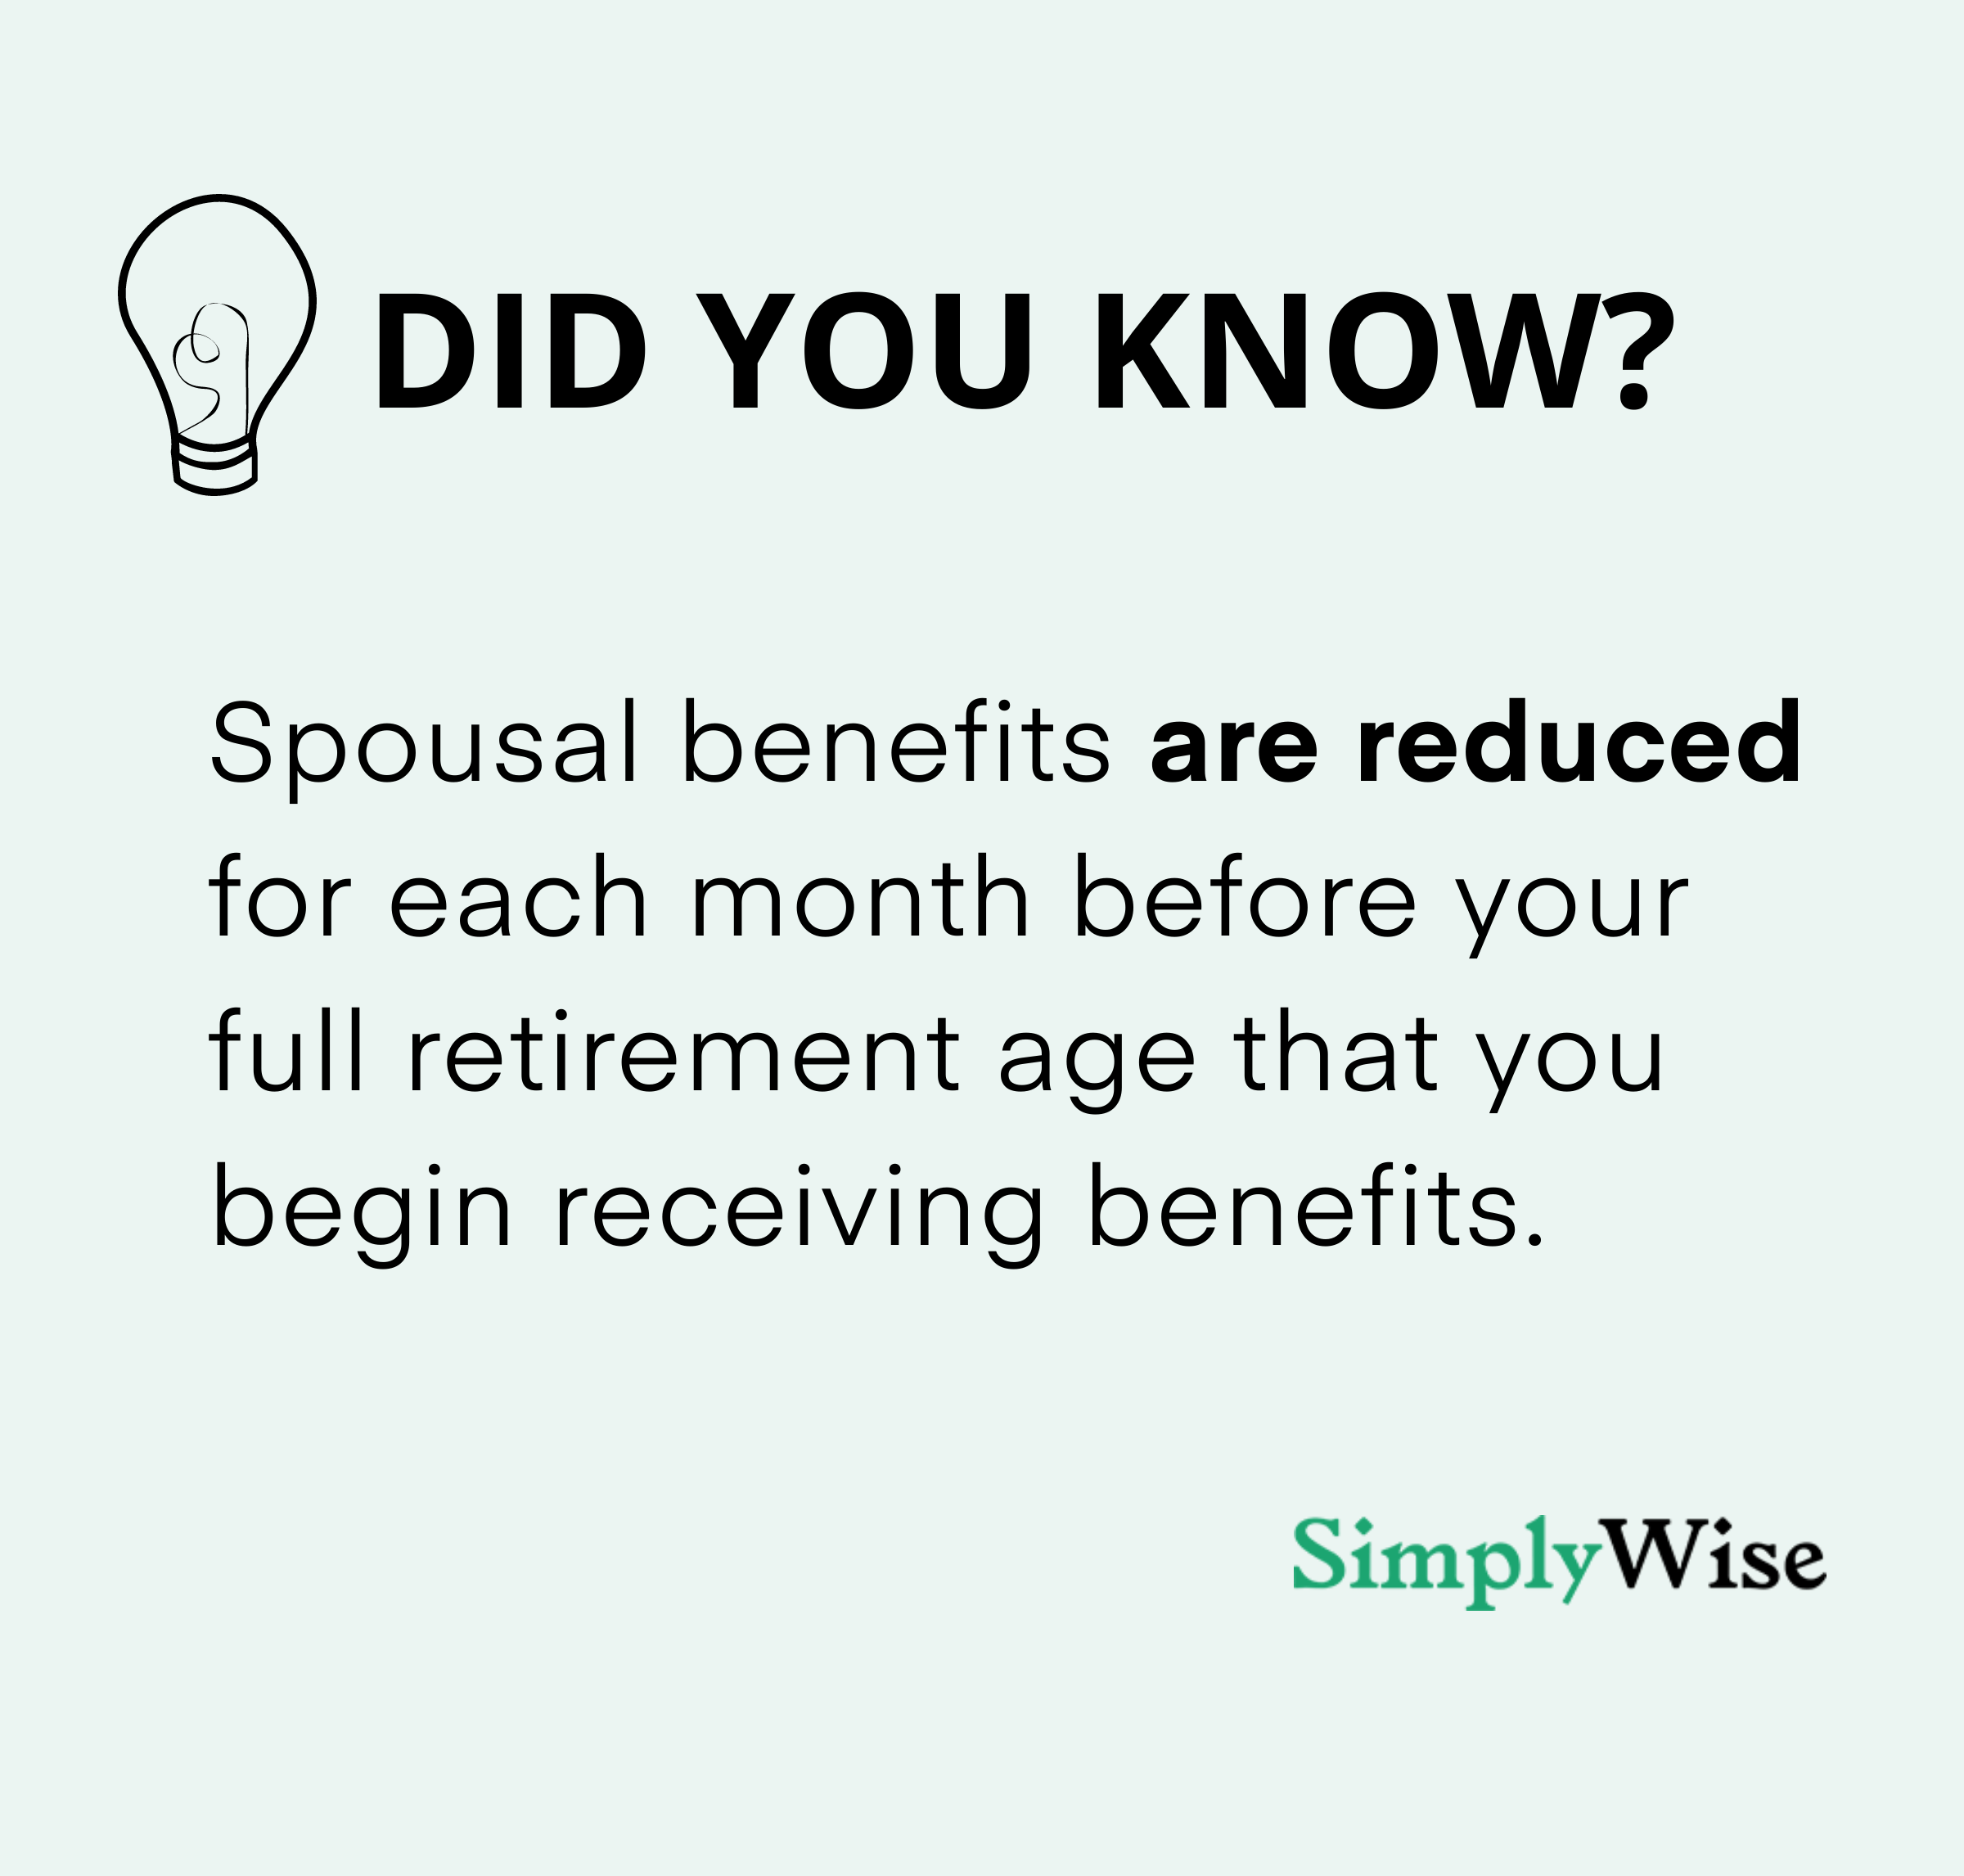 social security and spousal benefits